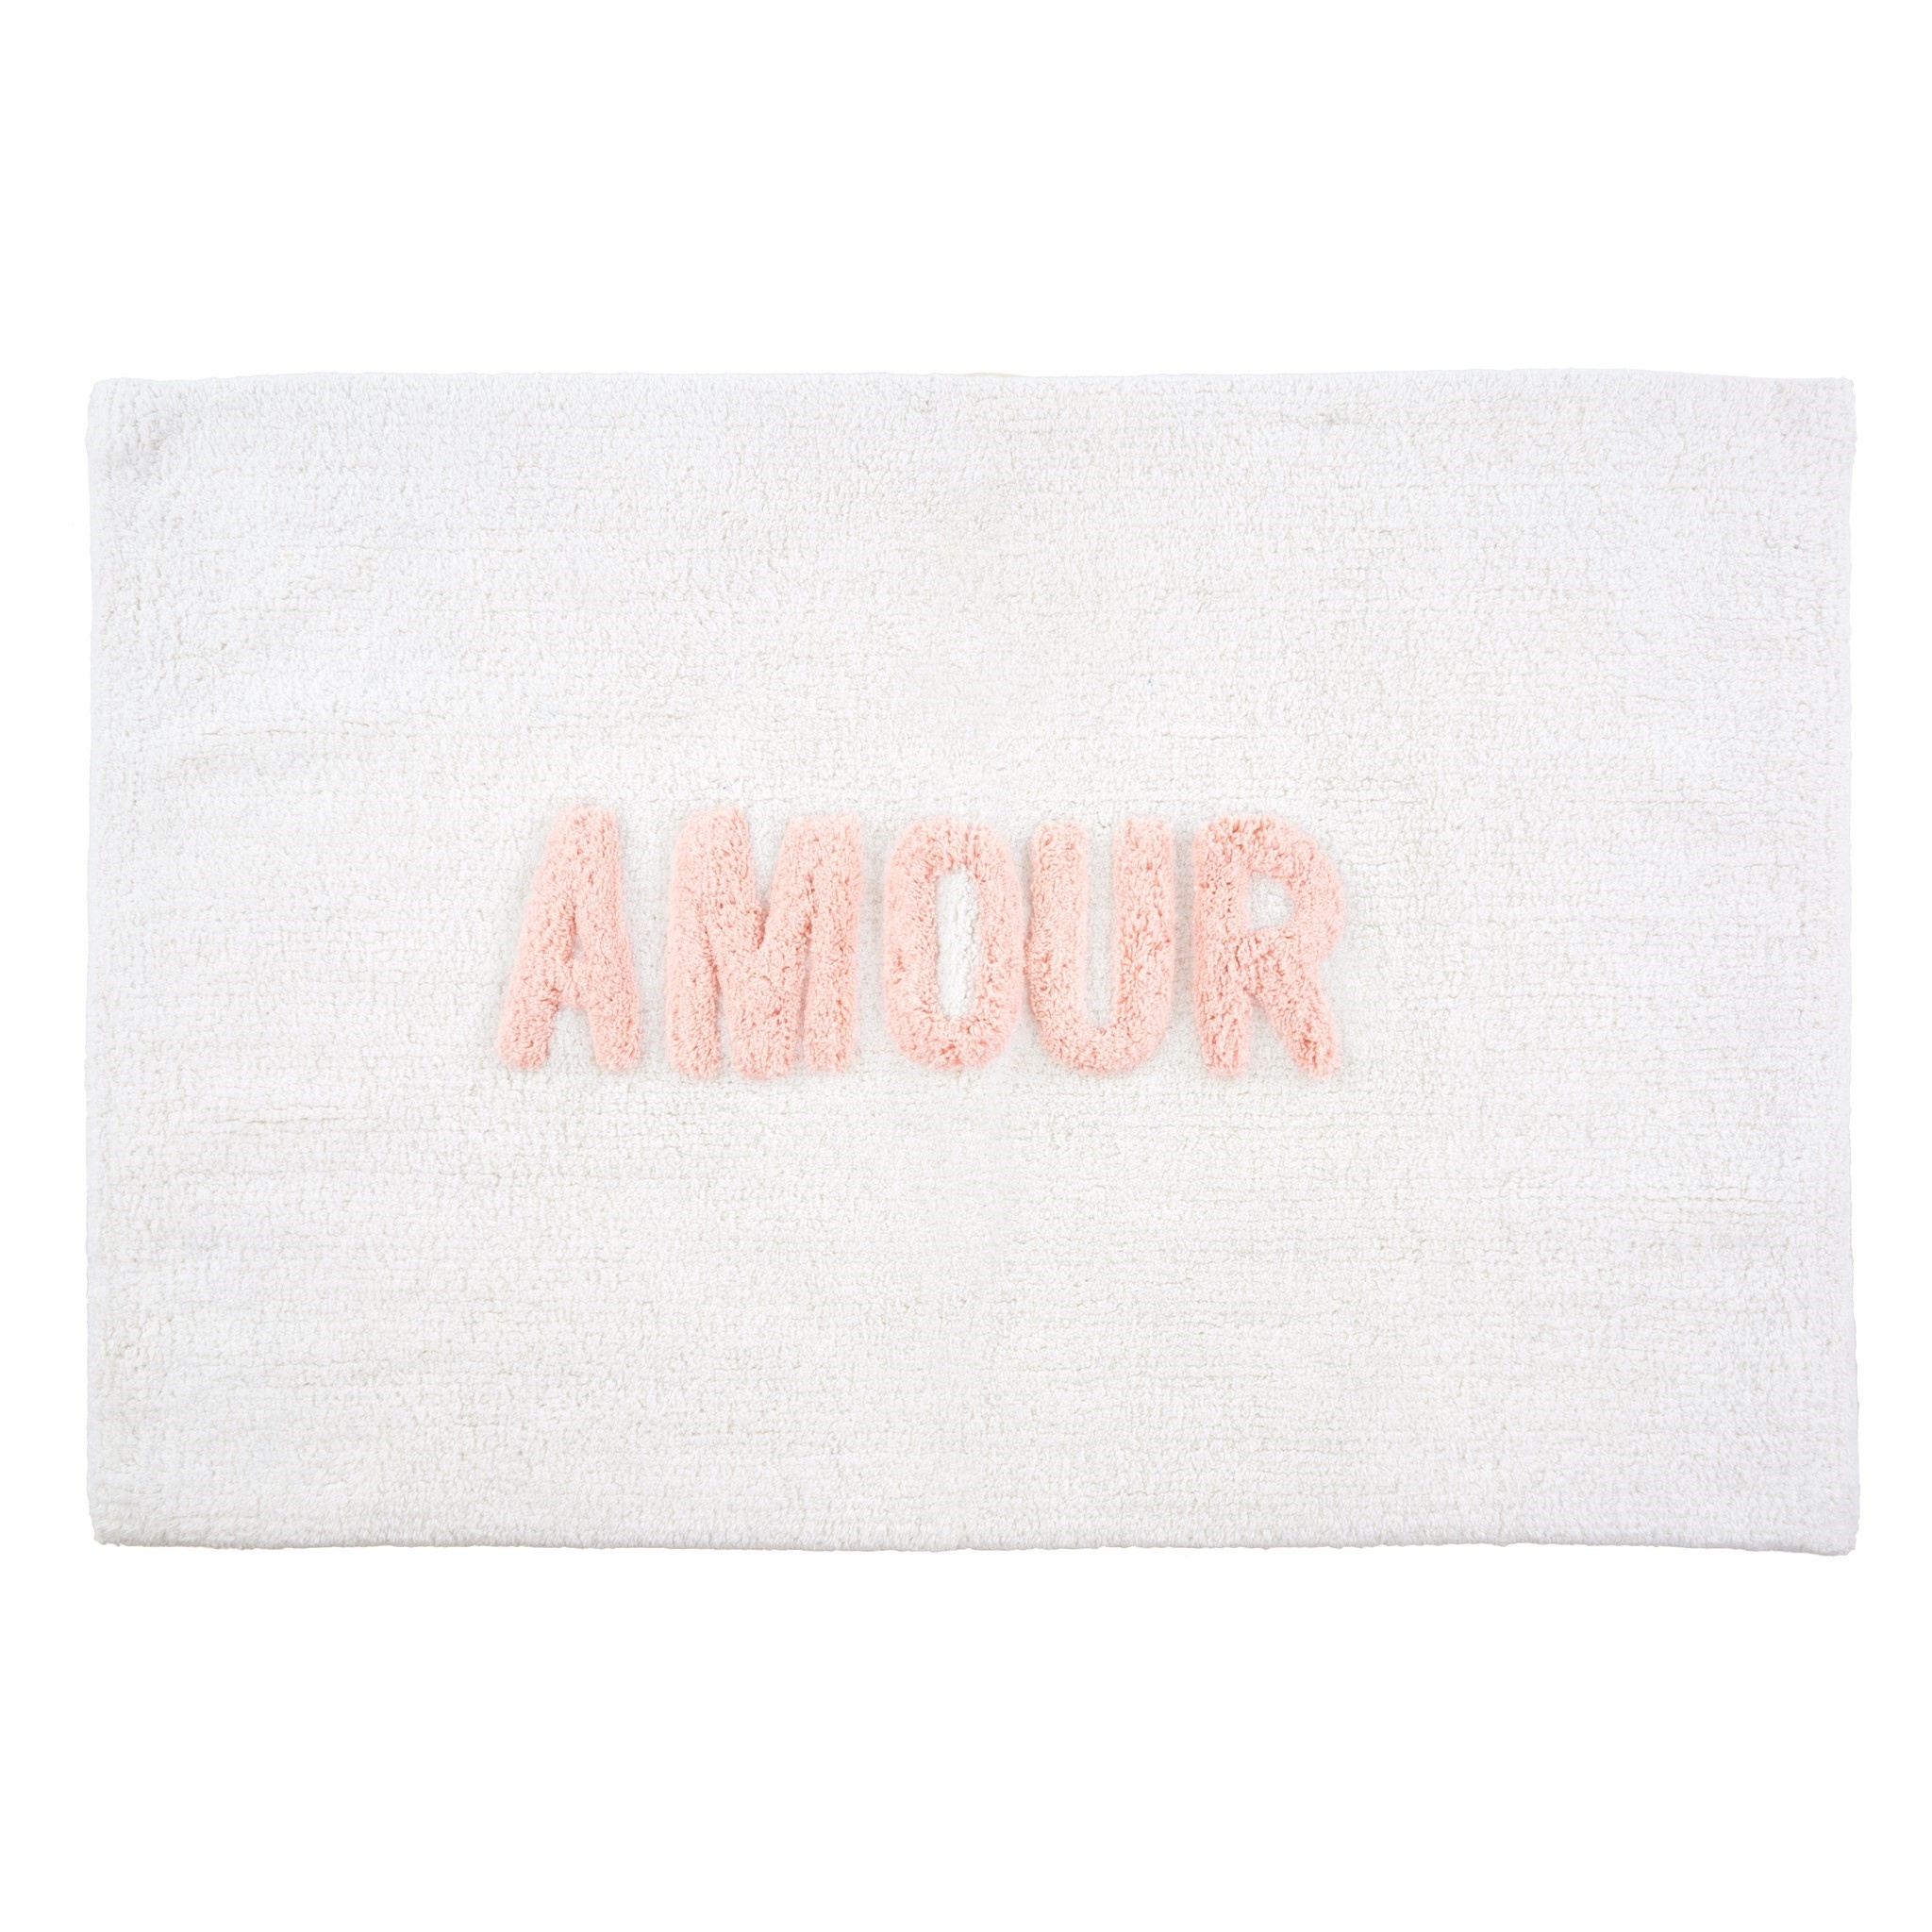 WHITE AND PINK BATH MAT